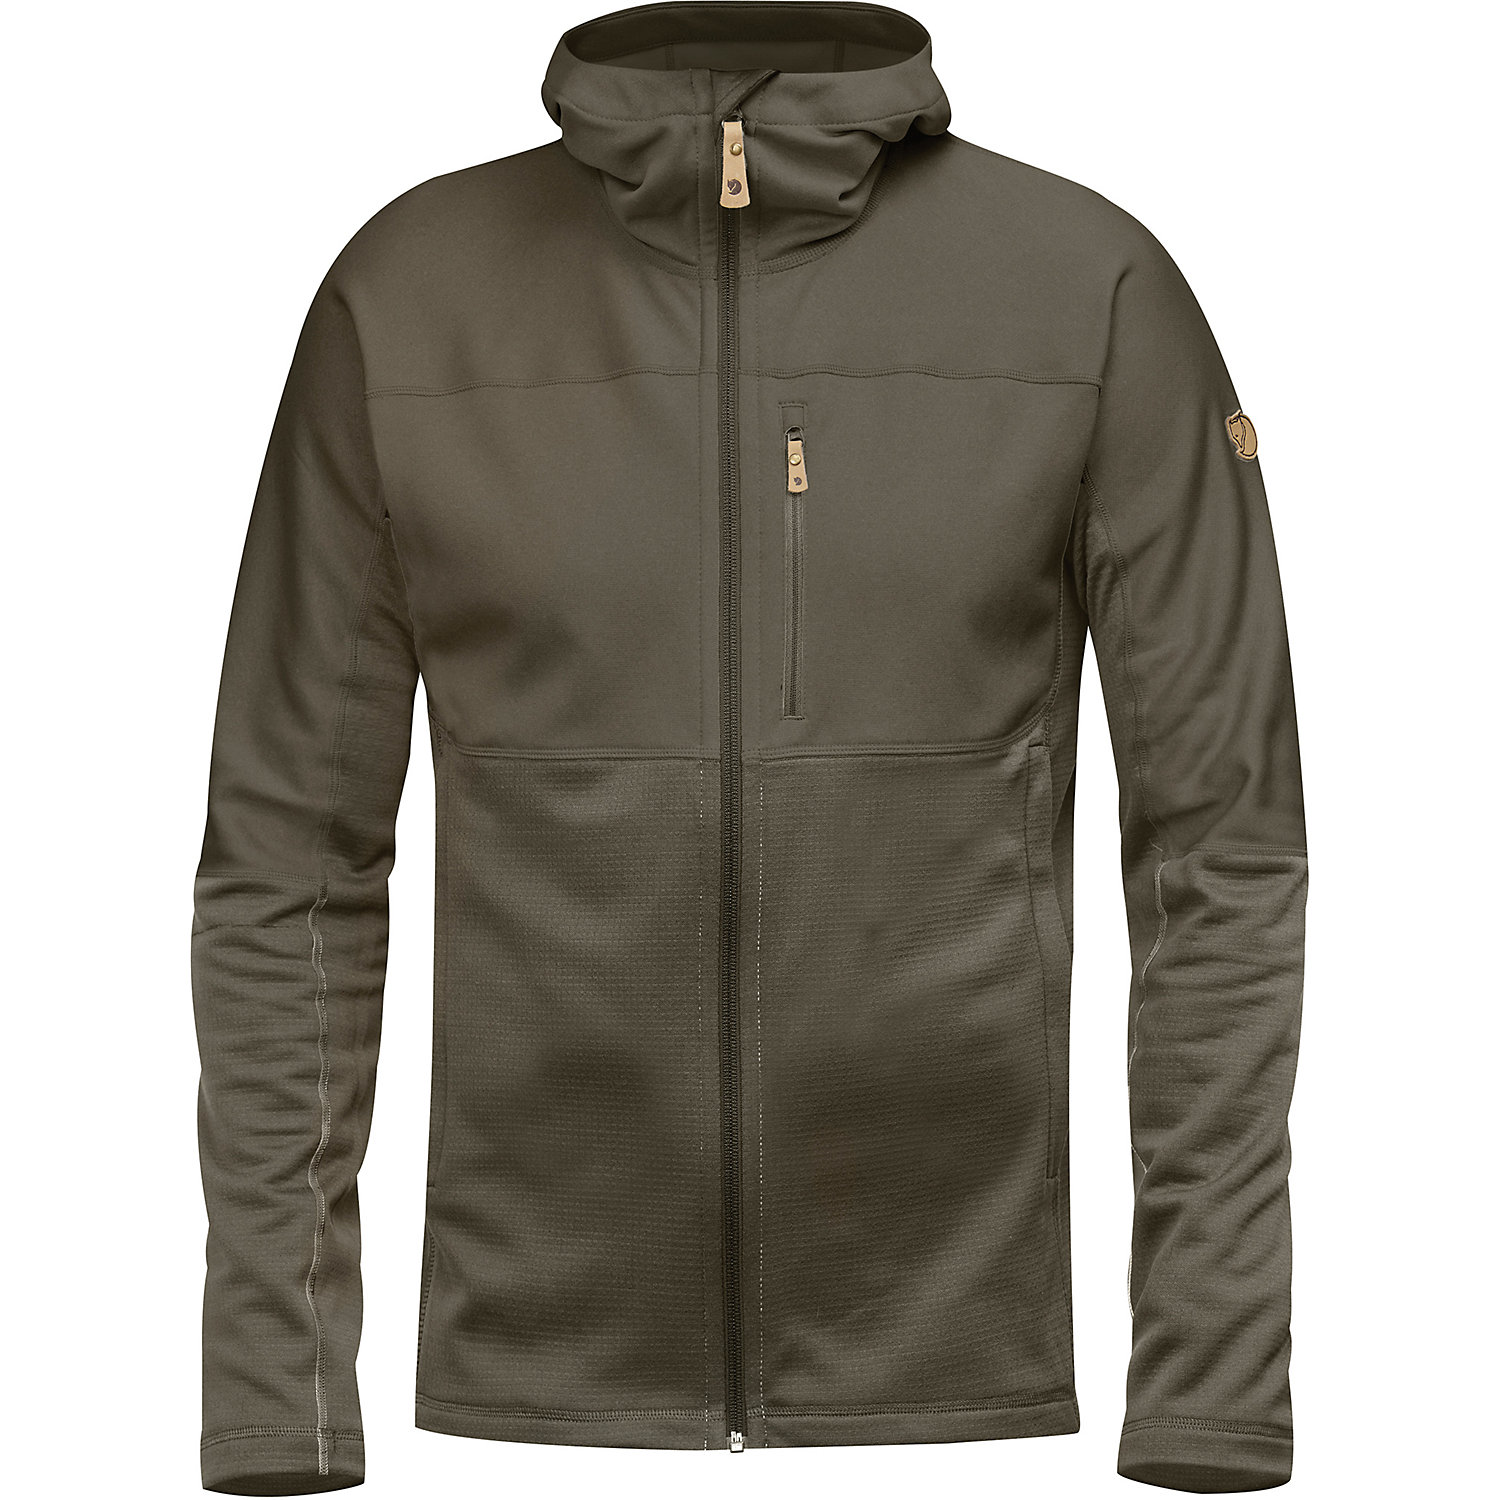 Fjallraven Men s Abisko Trail Fleece Jacket - Moosejaw 2fa90627498